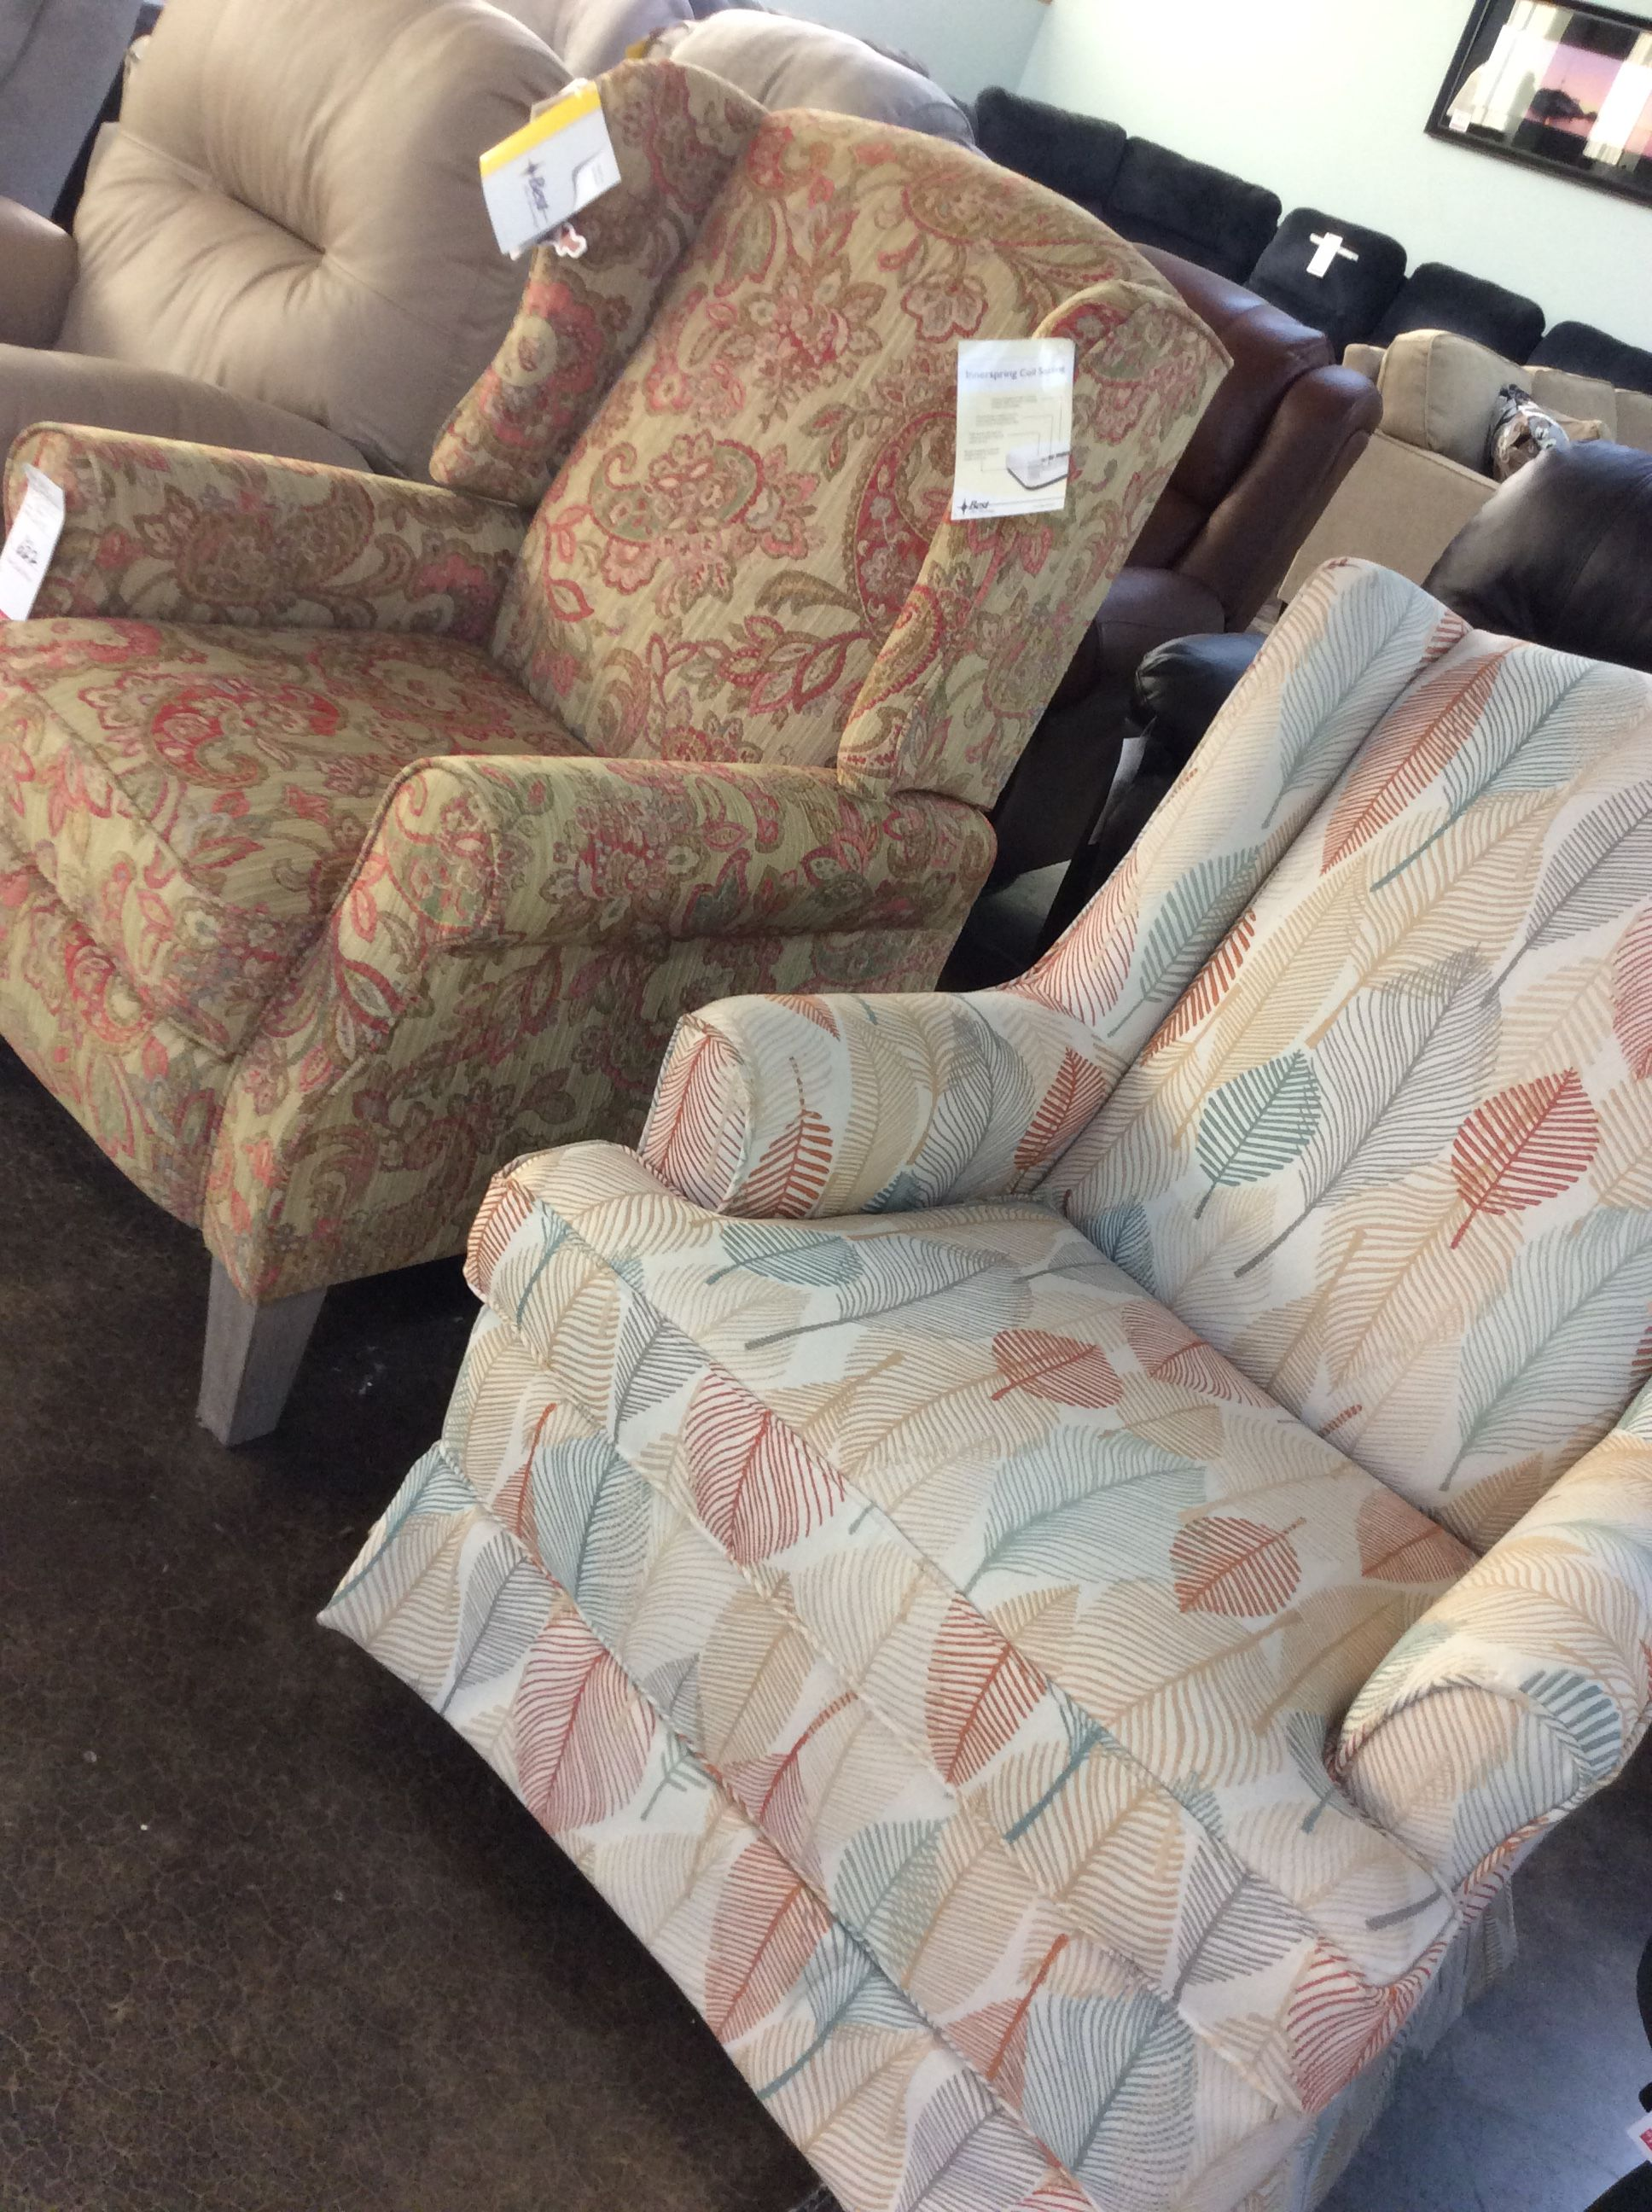 ❤️Loving The Fabric On These Best Chairs! Remember Best Chair Company Has  Over 800 Fabrics To Choose From; We Have A Wall Of Fabrics For You To Look  ...